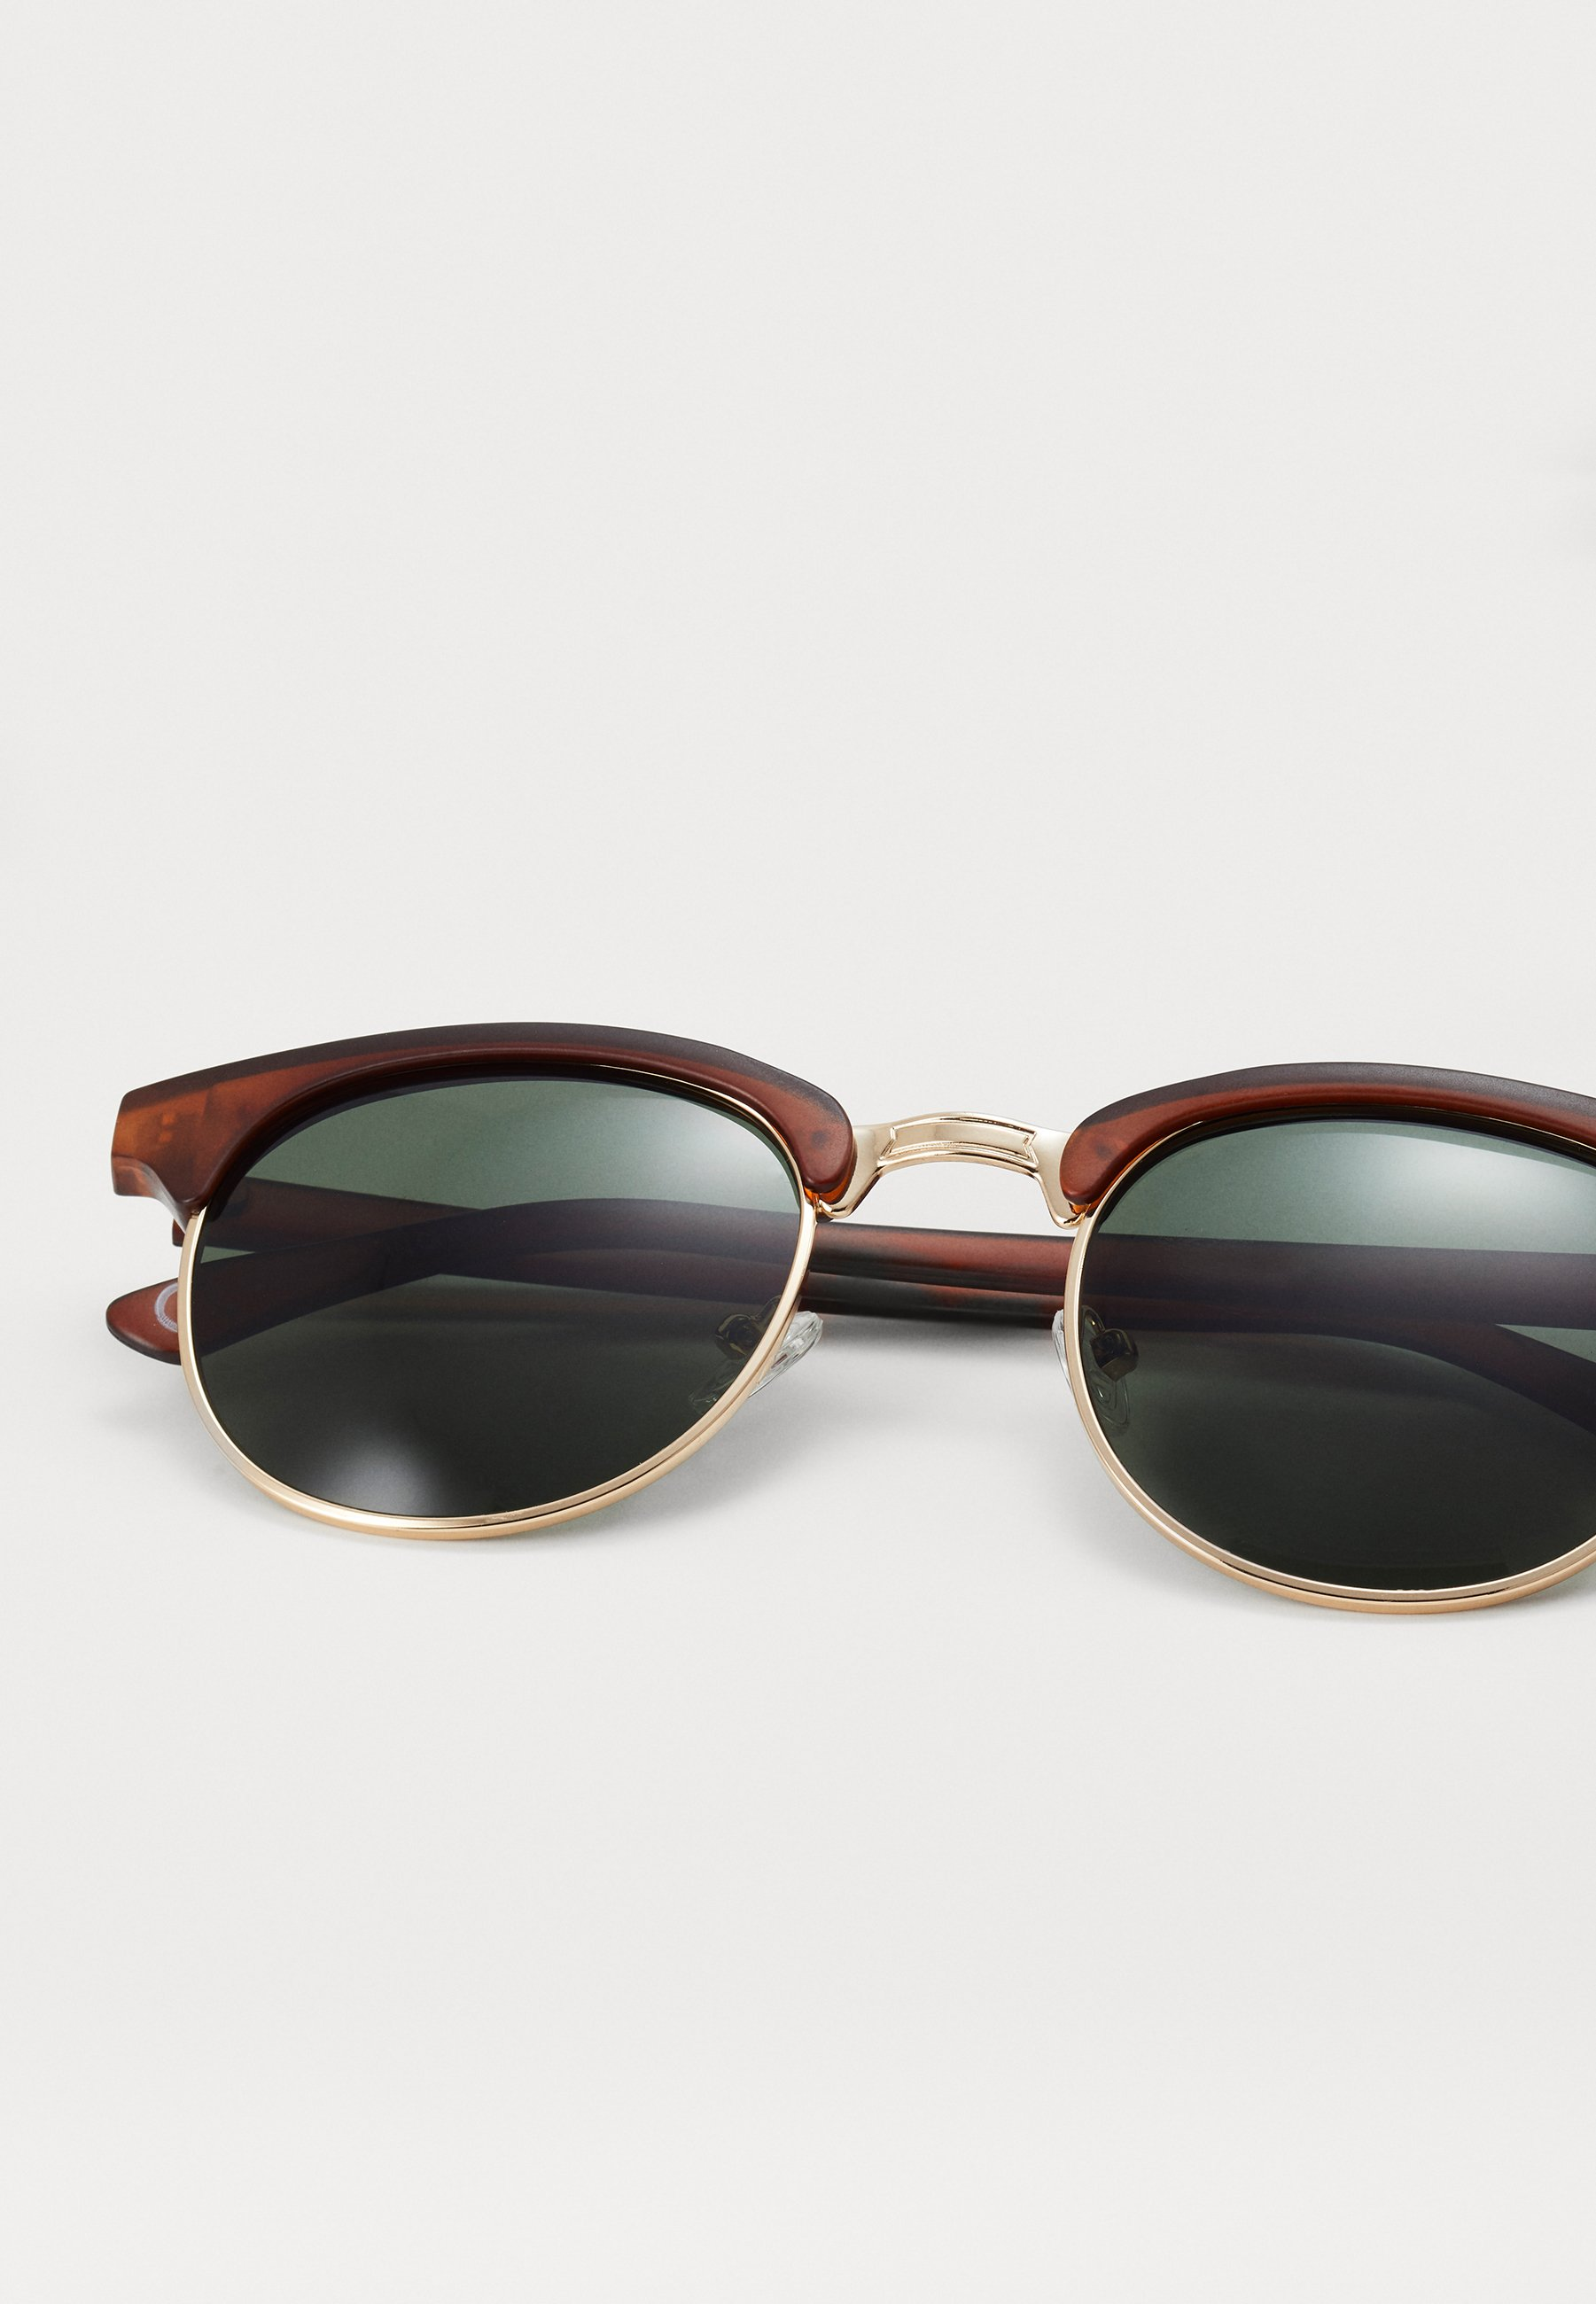 Zign Sonnenbrille - brown/green